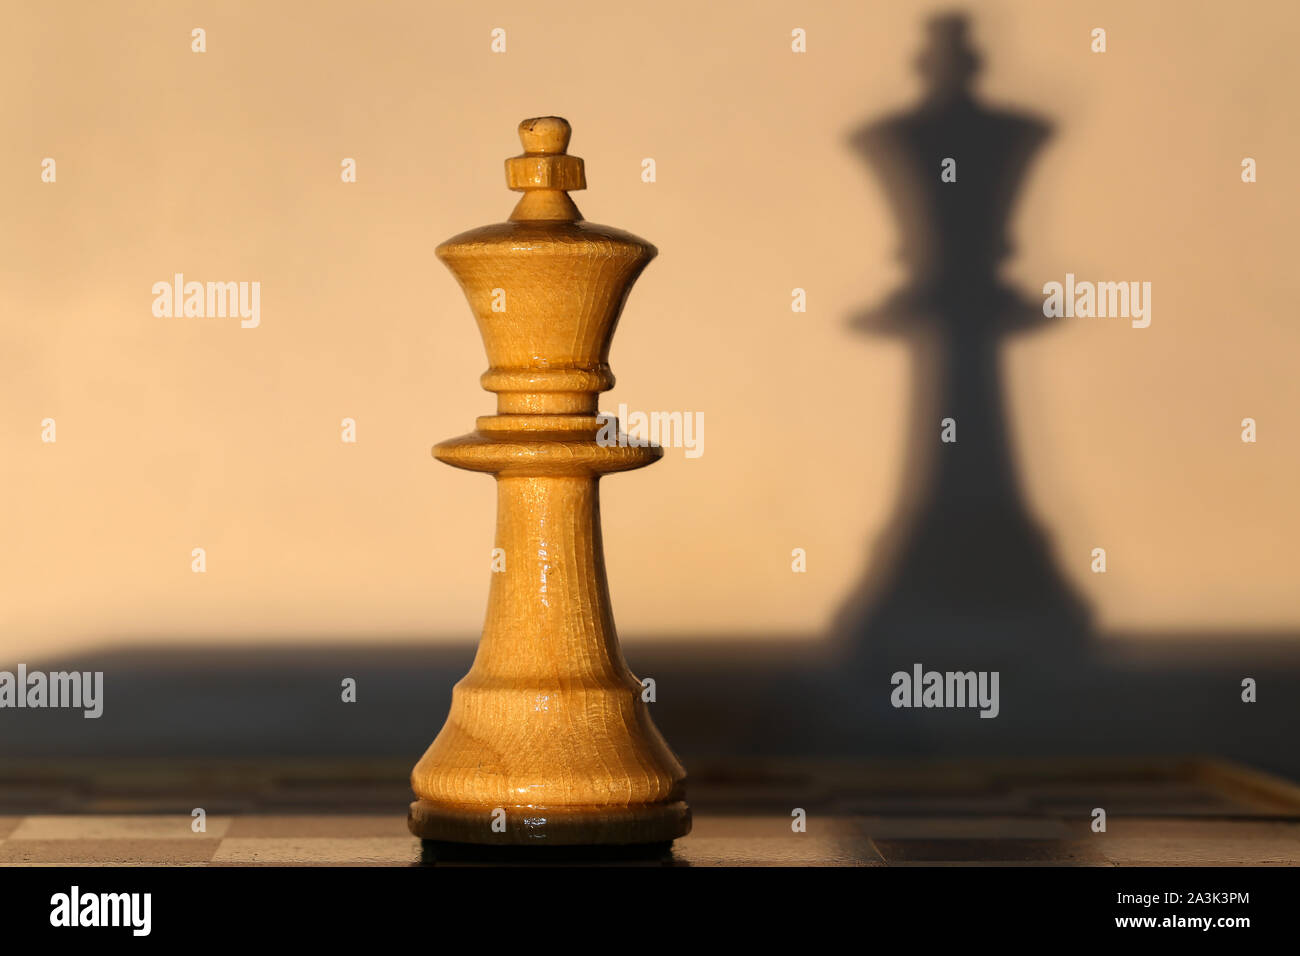 Chess Piece King And Shadow From Her Stock Photo Alamy